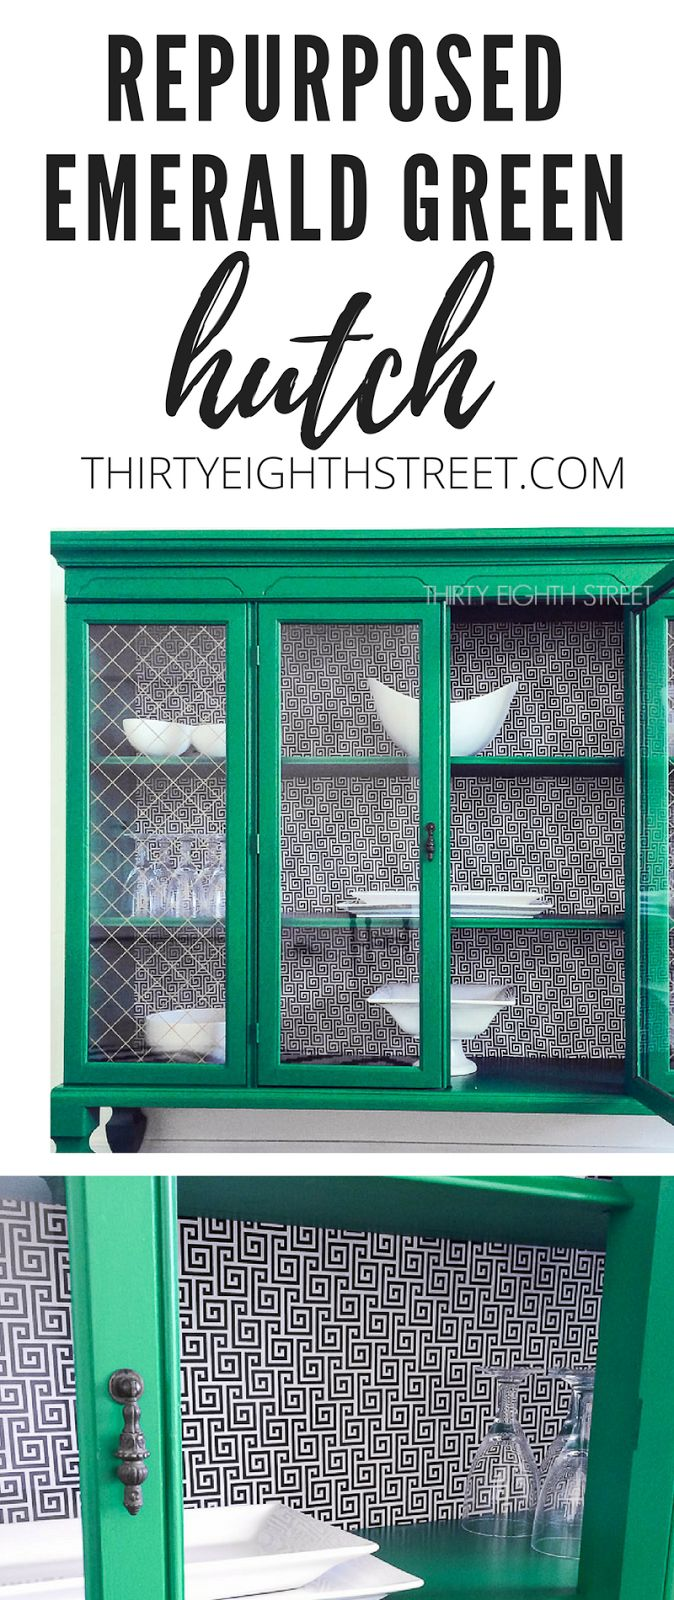 How To Get Two Pieces From One Hutch by Thirty Eighth Street